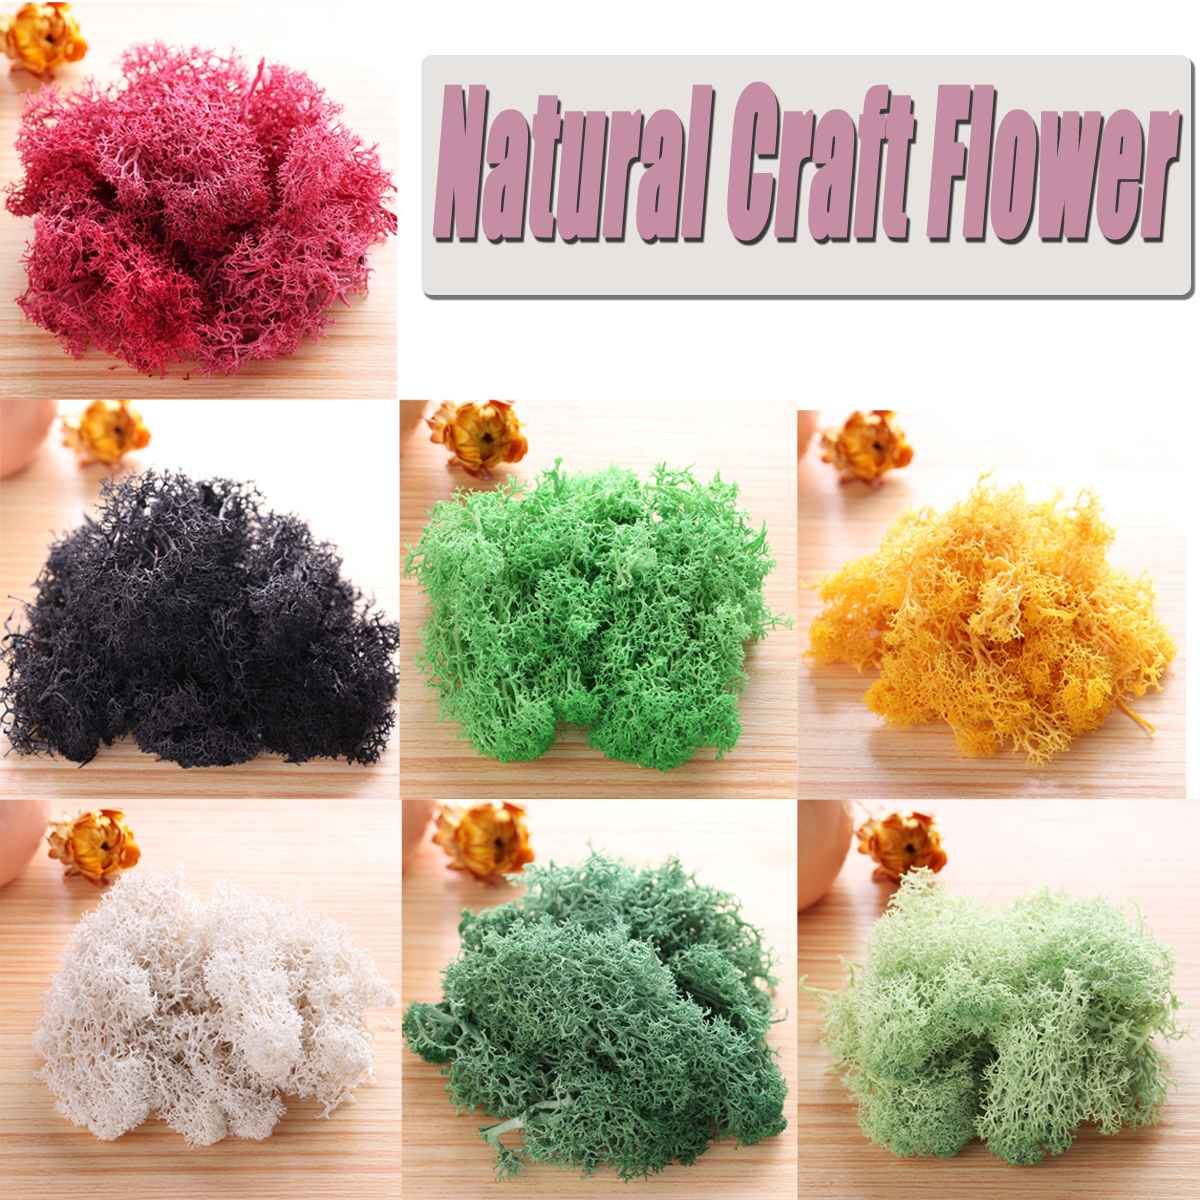 Natural Norwegian Reindeer Moss Preserved Dried Craft Flower Artificial Decorations Artificial & Dried Flowers